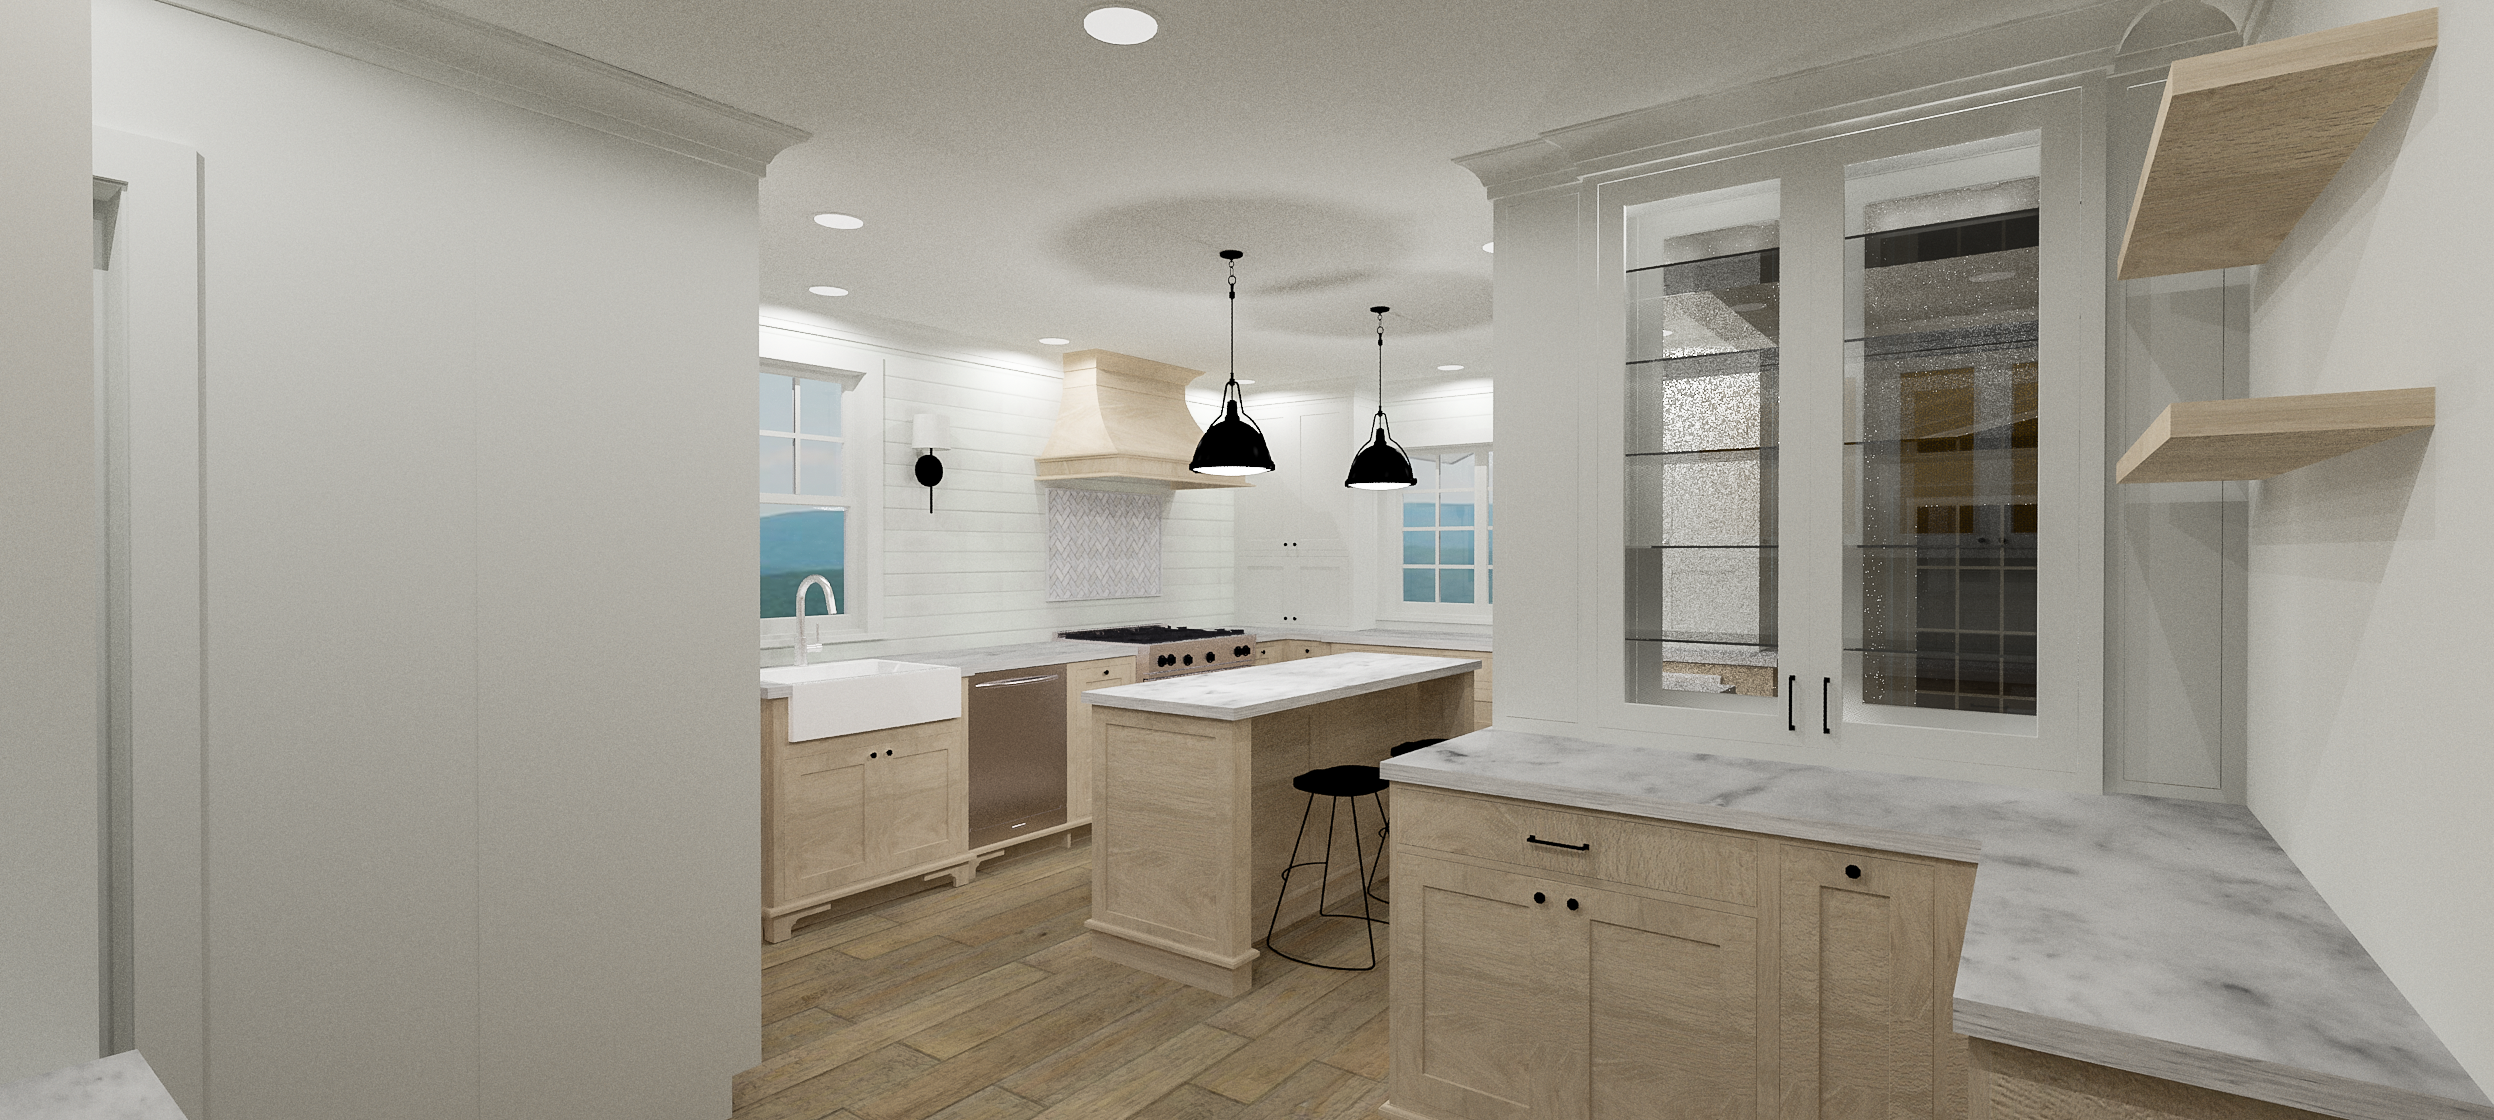 Kitchen Rendering | Designed by  &Design | Rendered by Kelly Fridline Design using Chief Architect X9